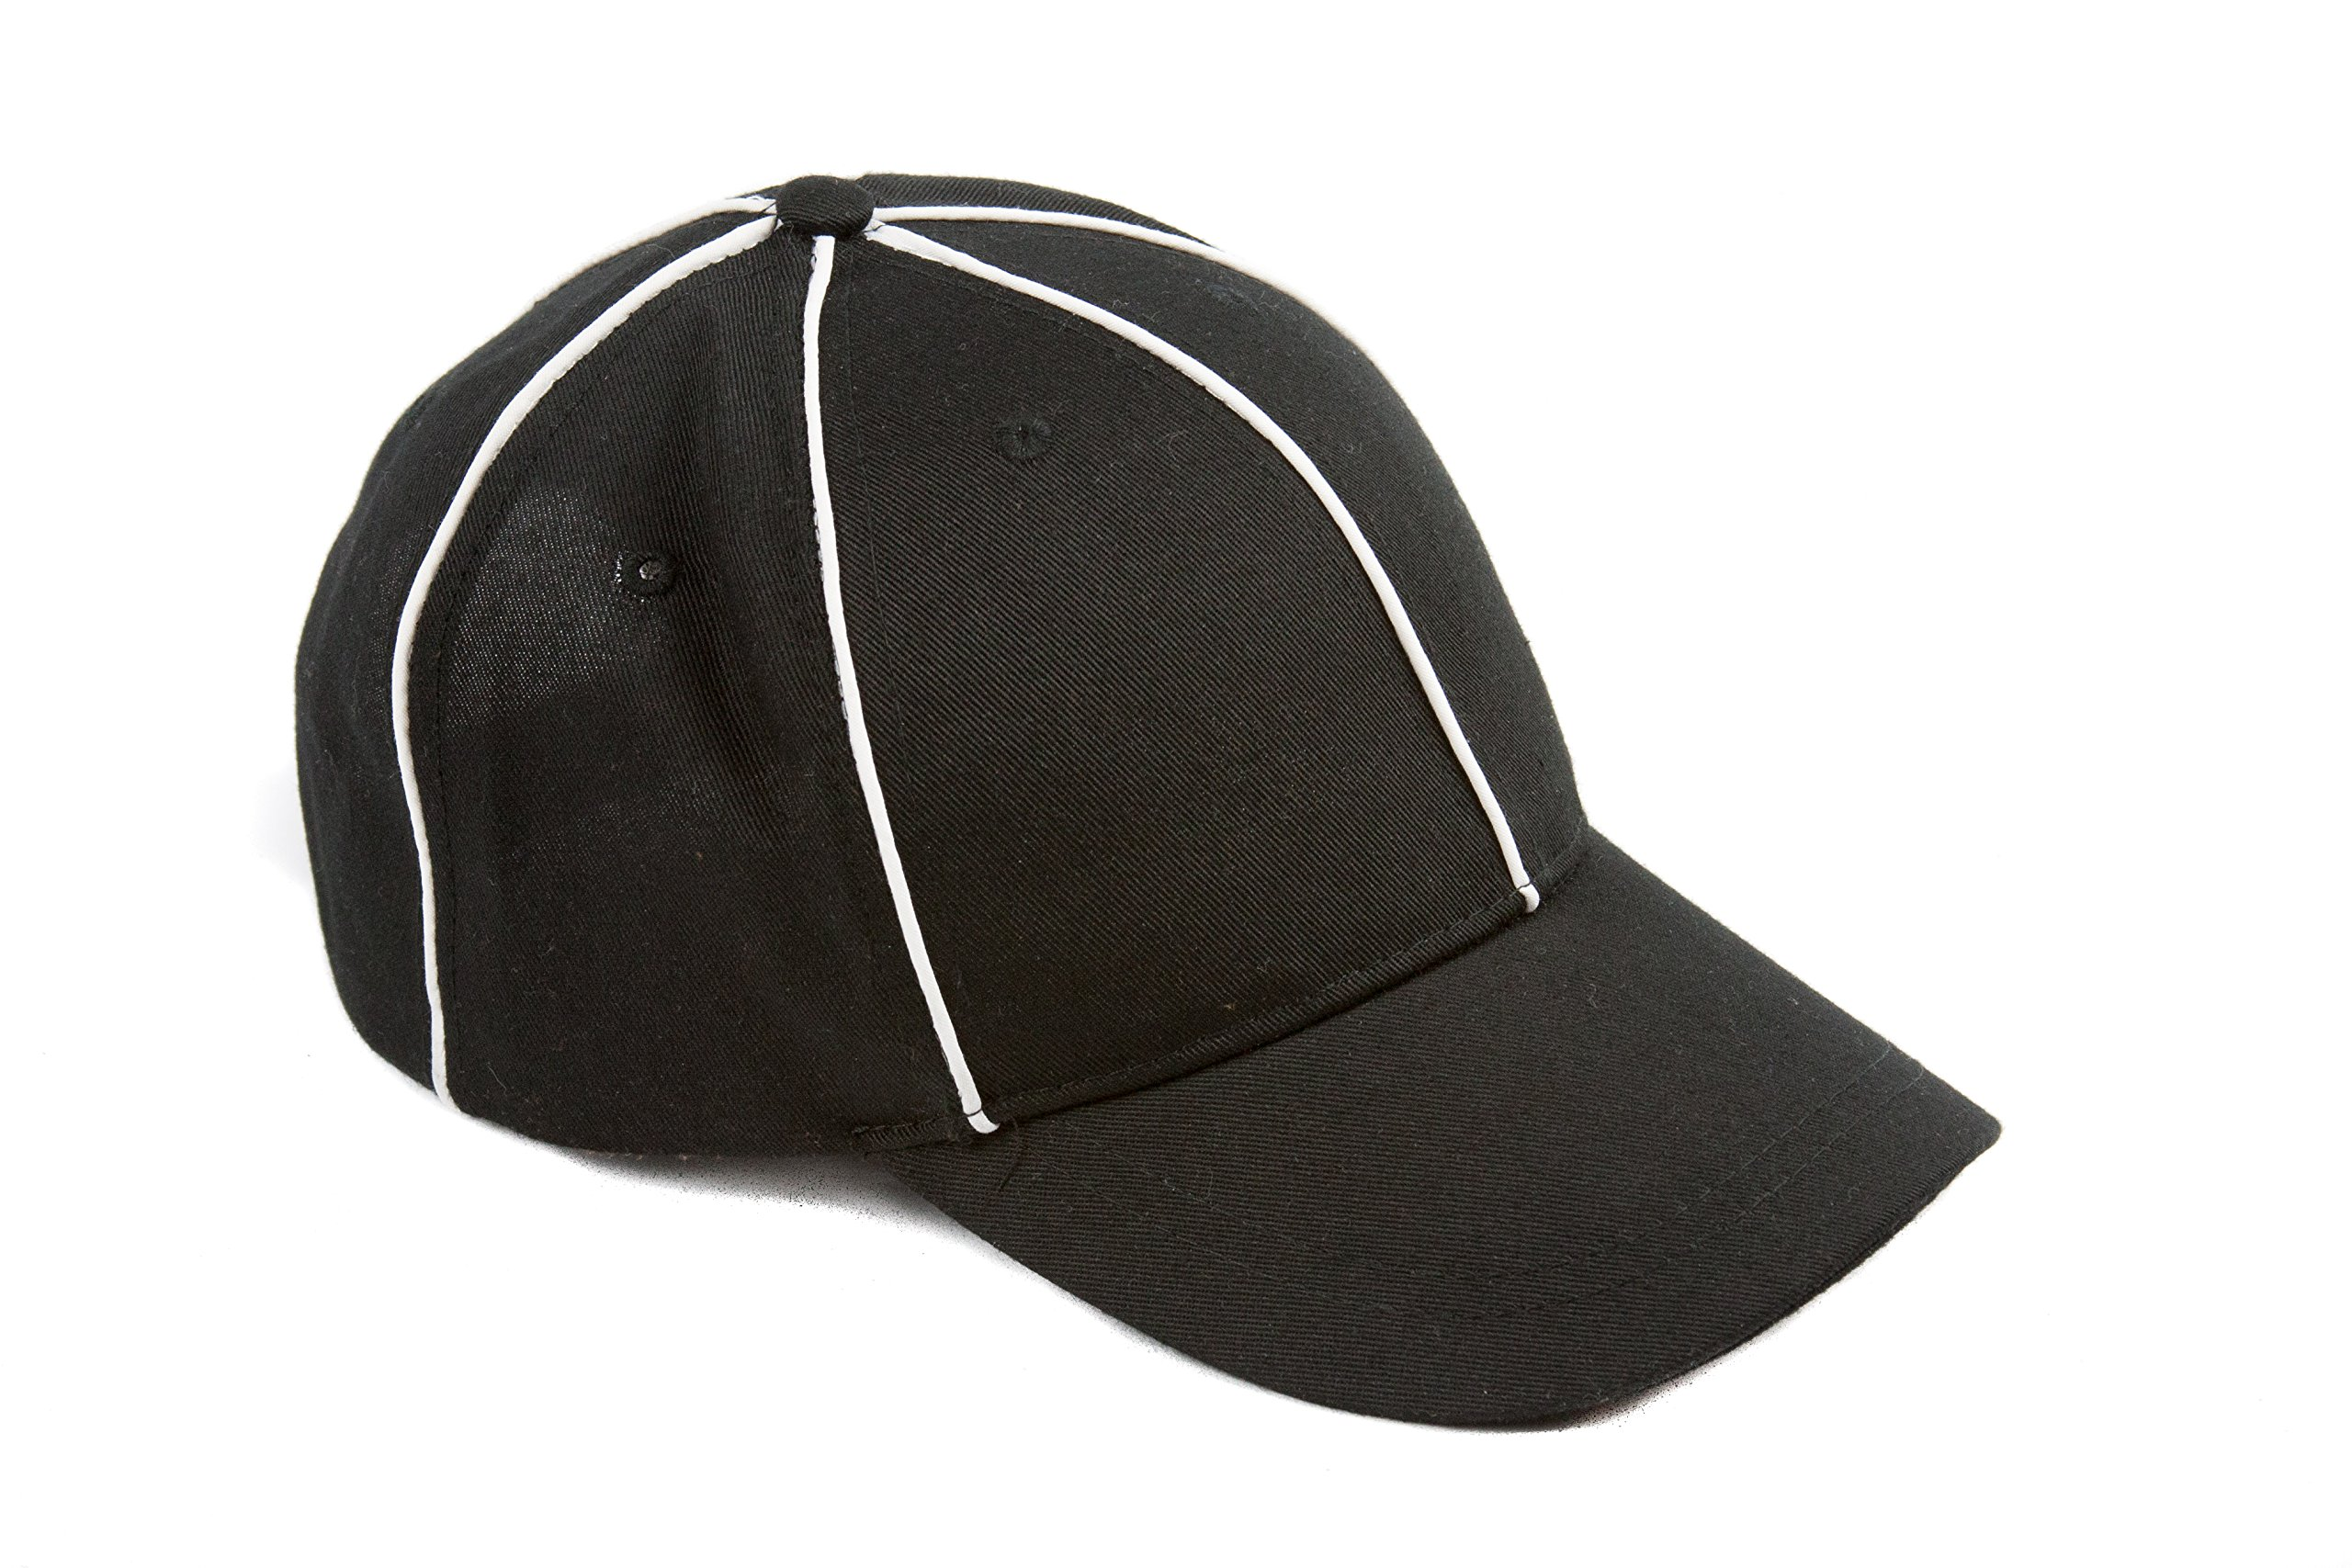 Murray Sporting Goods Referee Hat Black with White Stripes Official Cap